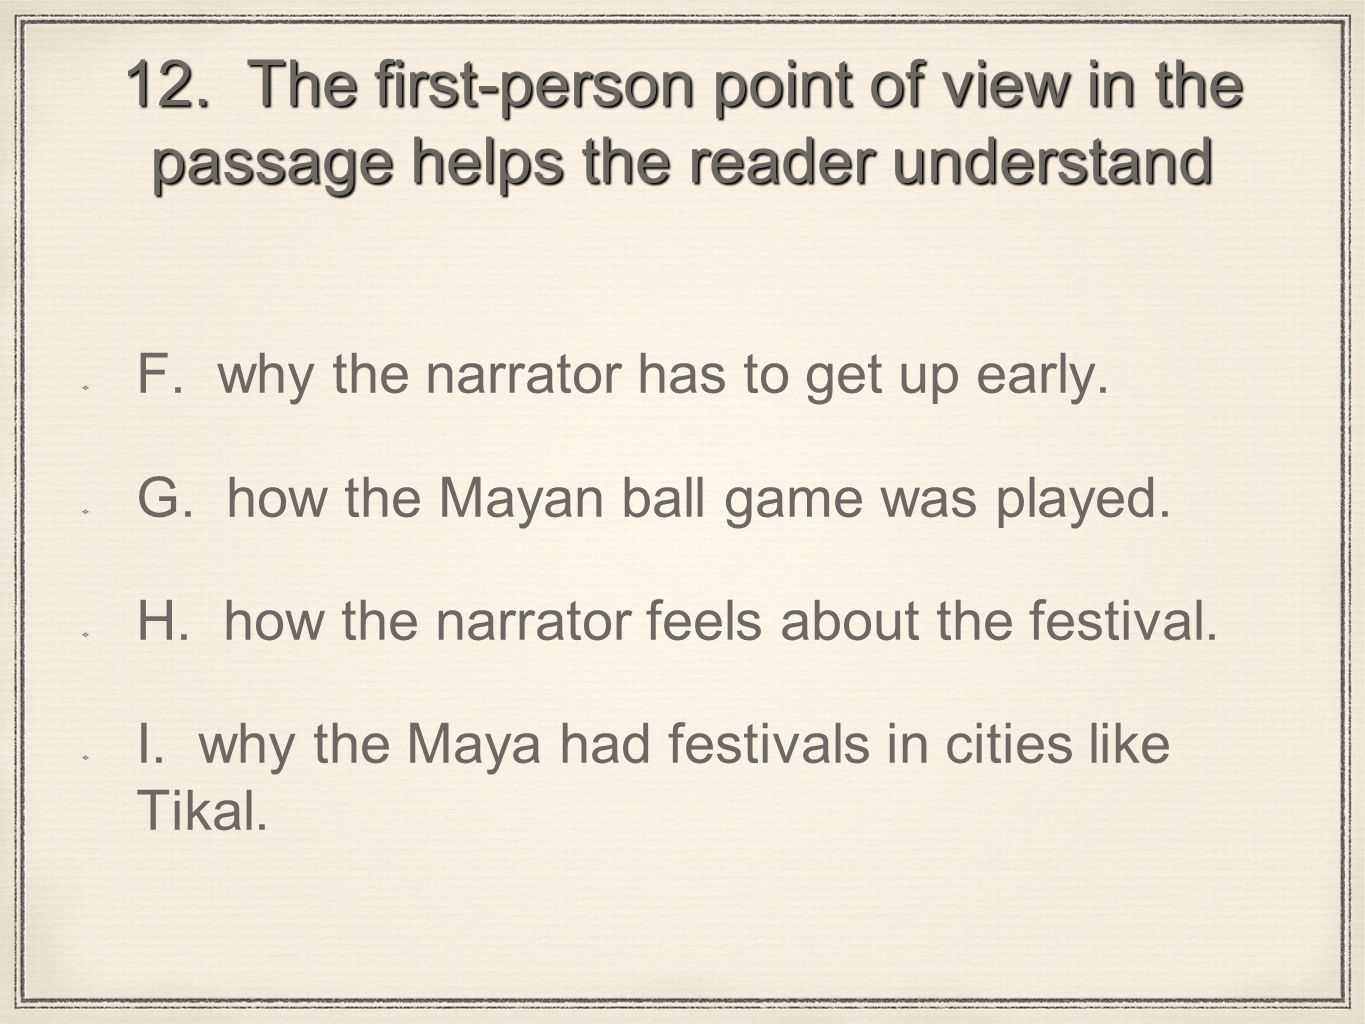 12. The first-person point of view in the passage helps the reader understand